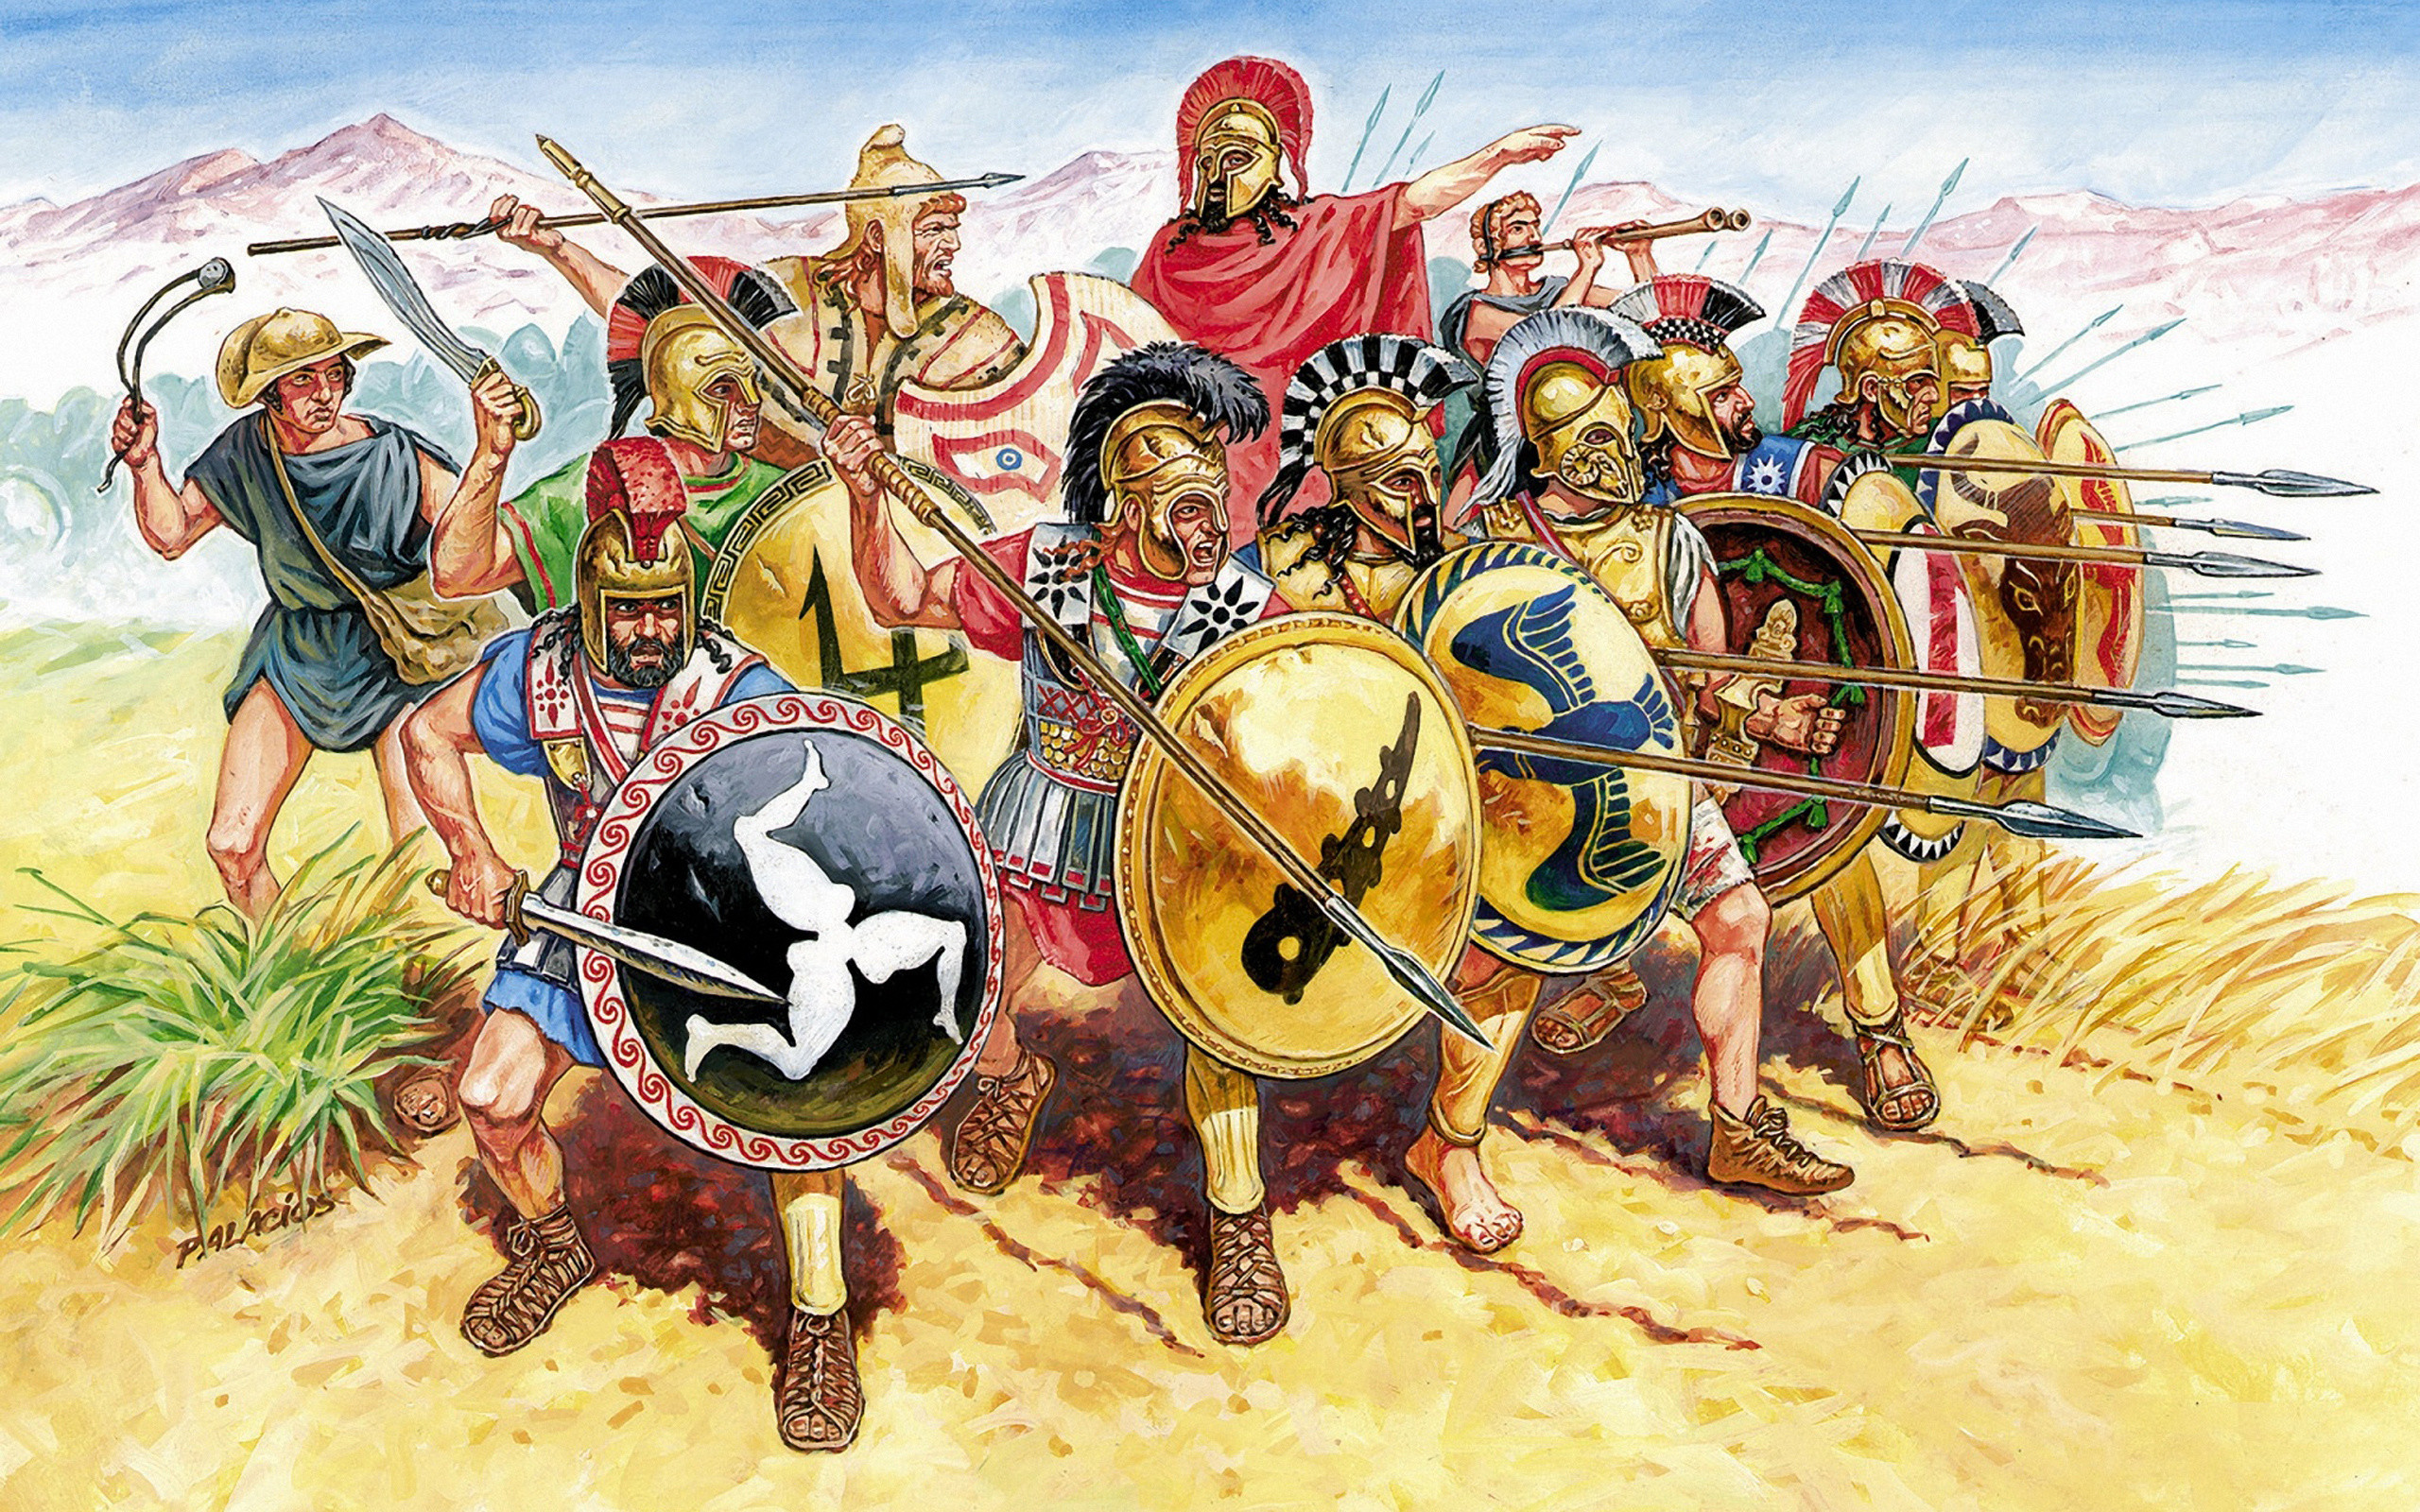 Res: 2560x1600, Rome, Painting, Infantry, Palacios, Army, Greek